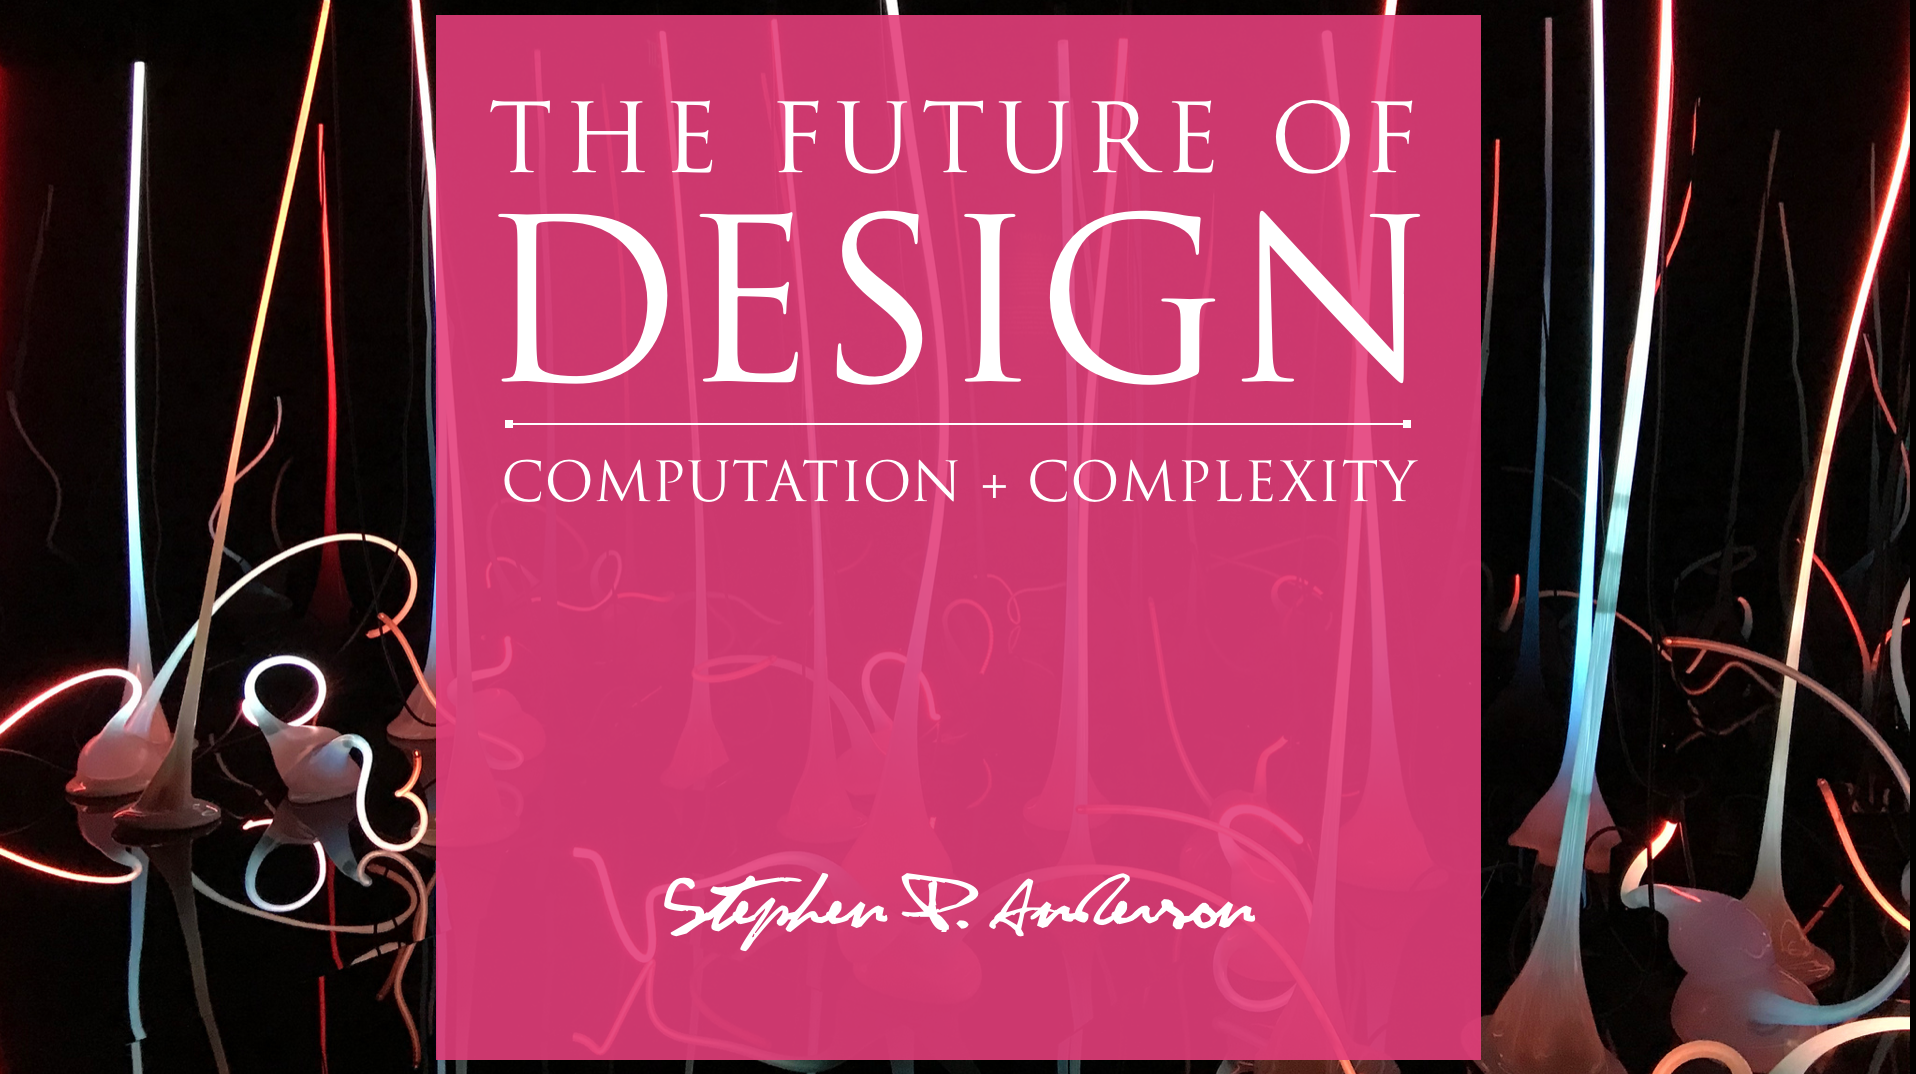 The Future of Design: Computation & Complexity  - Stephen P